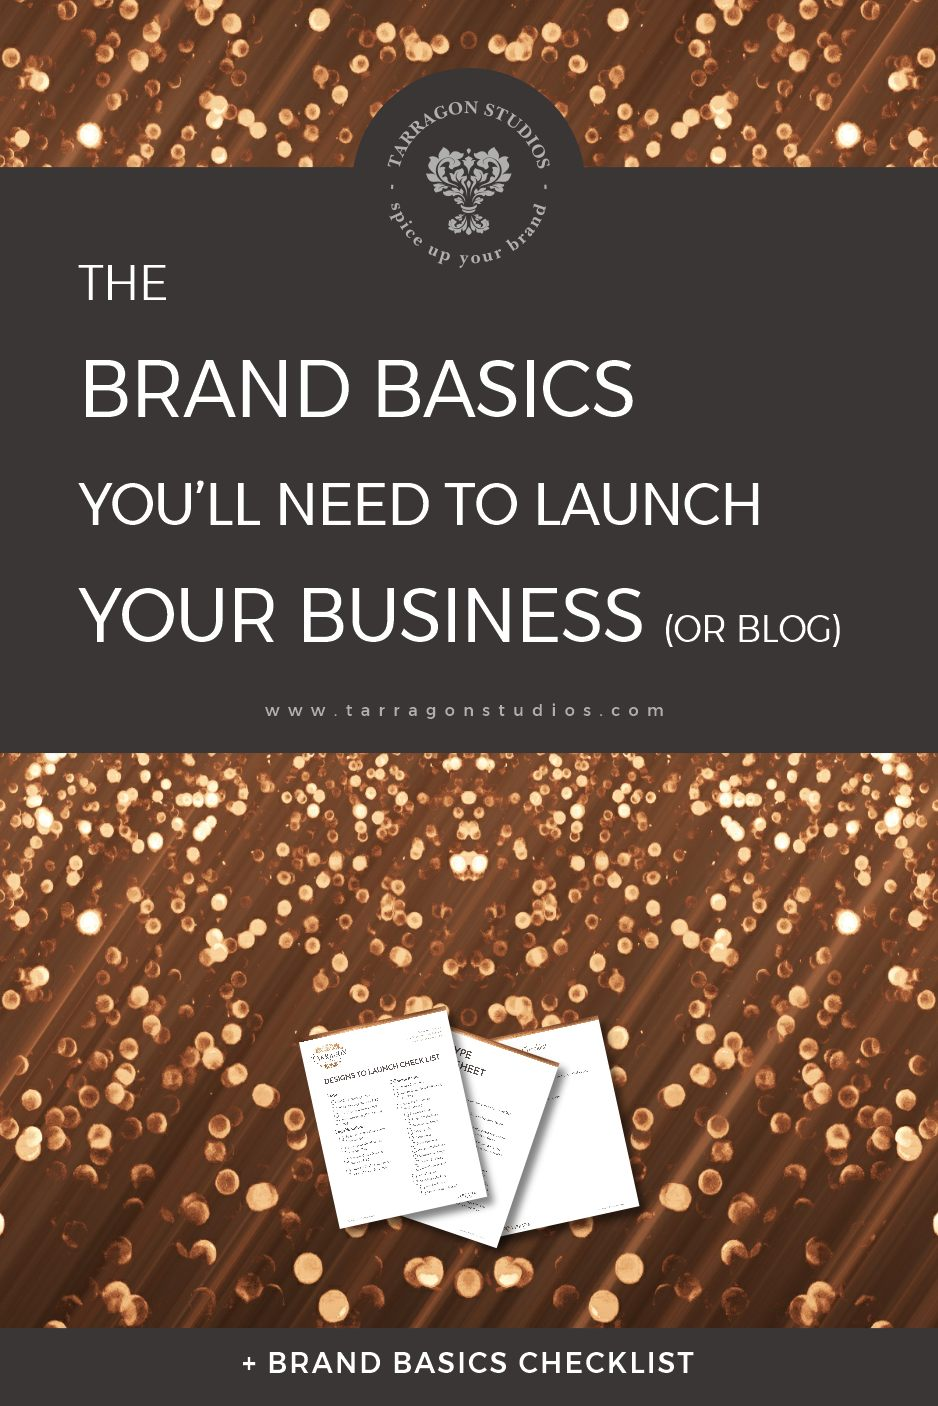 Everyone knows that your new business or blog needs a logo, but what else should you get from your designer? Continue reading to discover all the brand basics you'll need to create before you launch! #smallbusiness #branding #logo #business #blogging